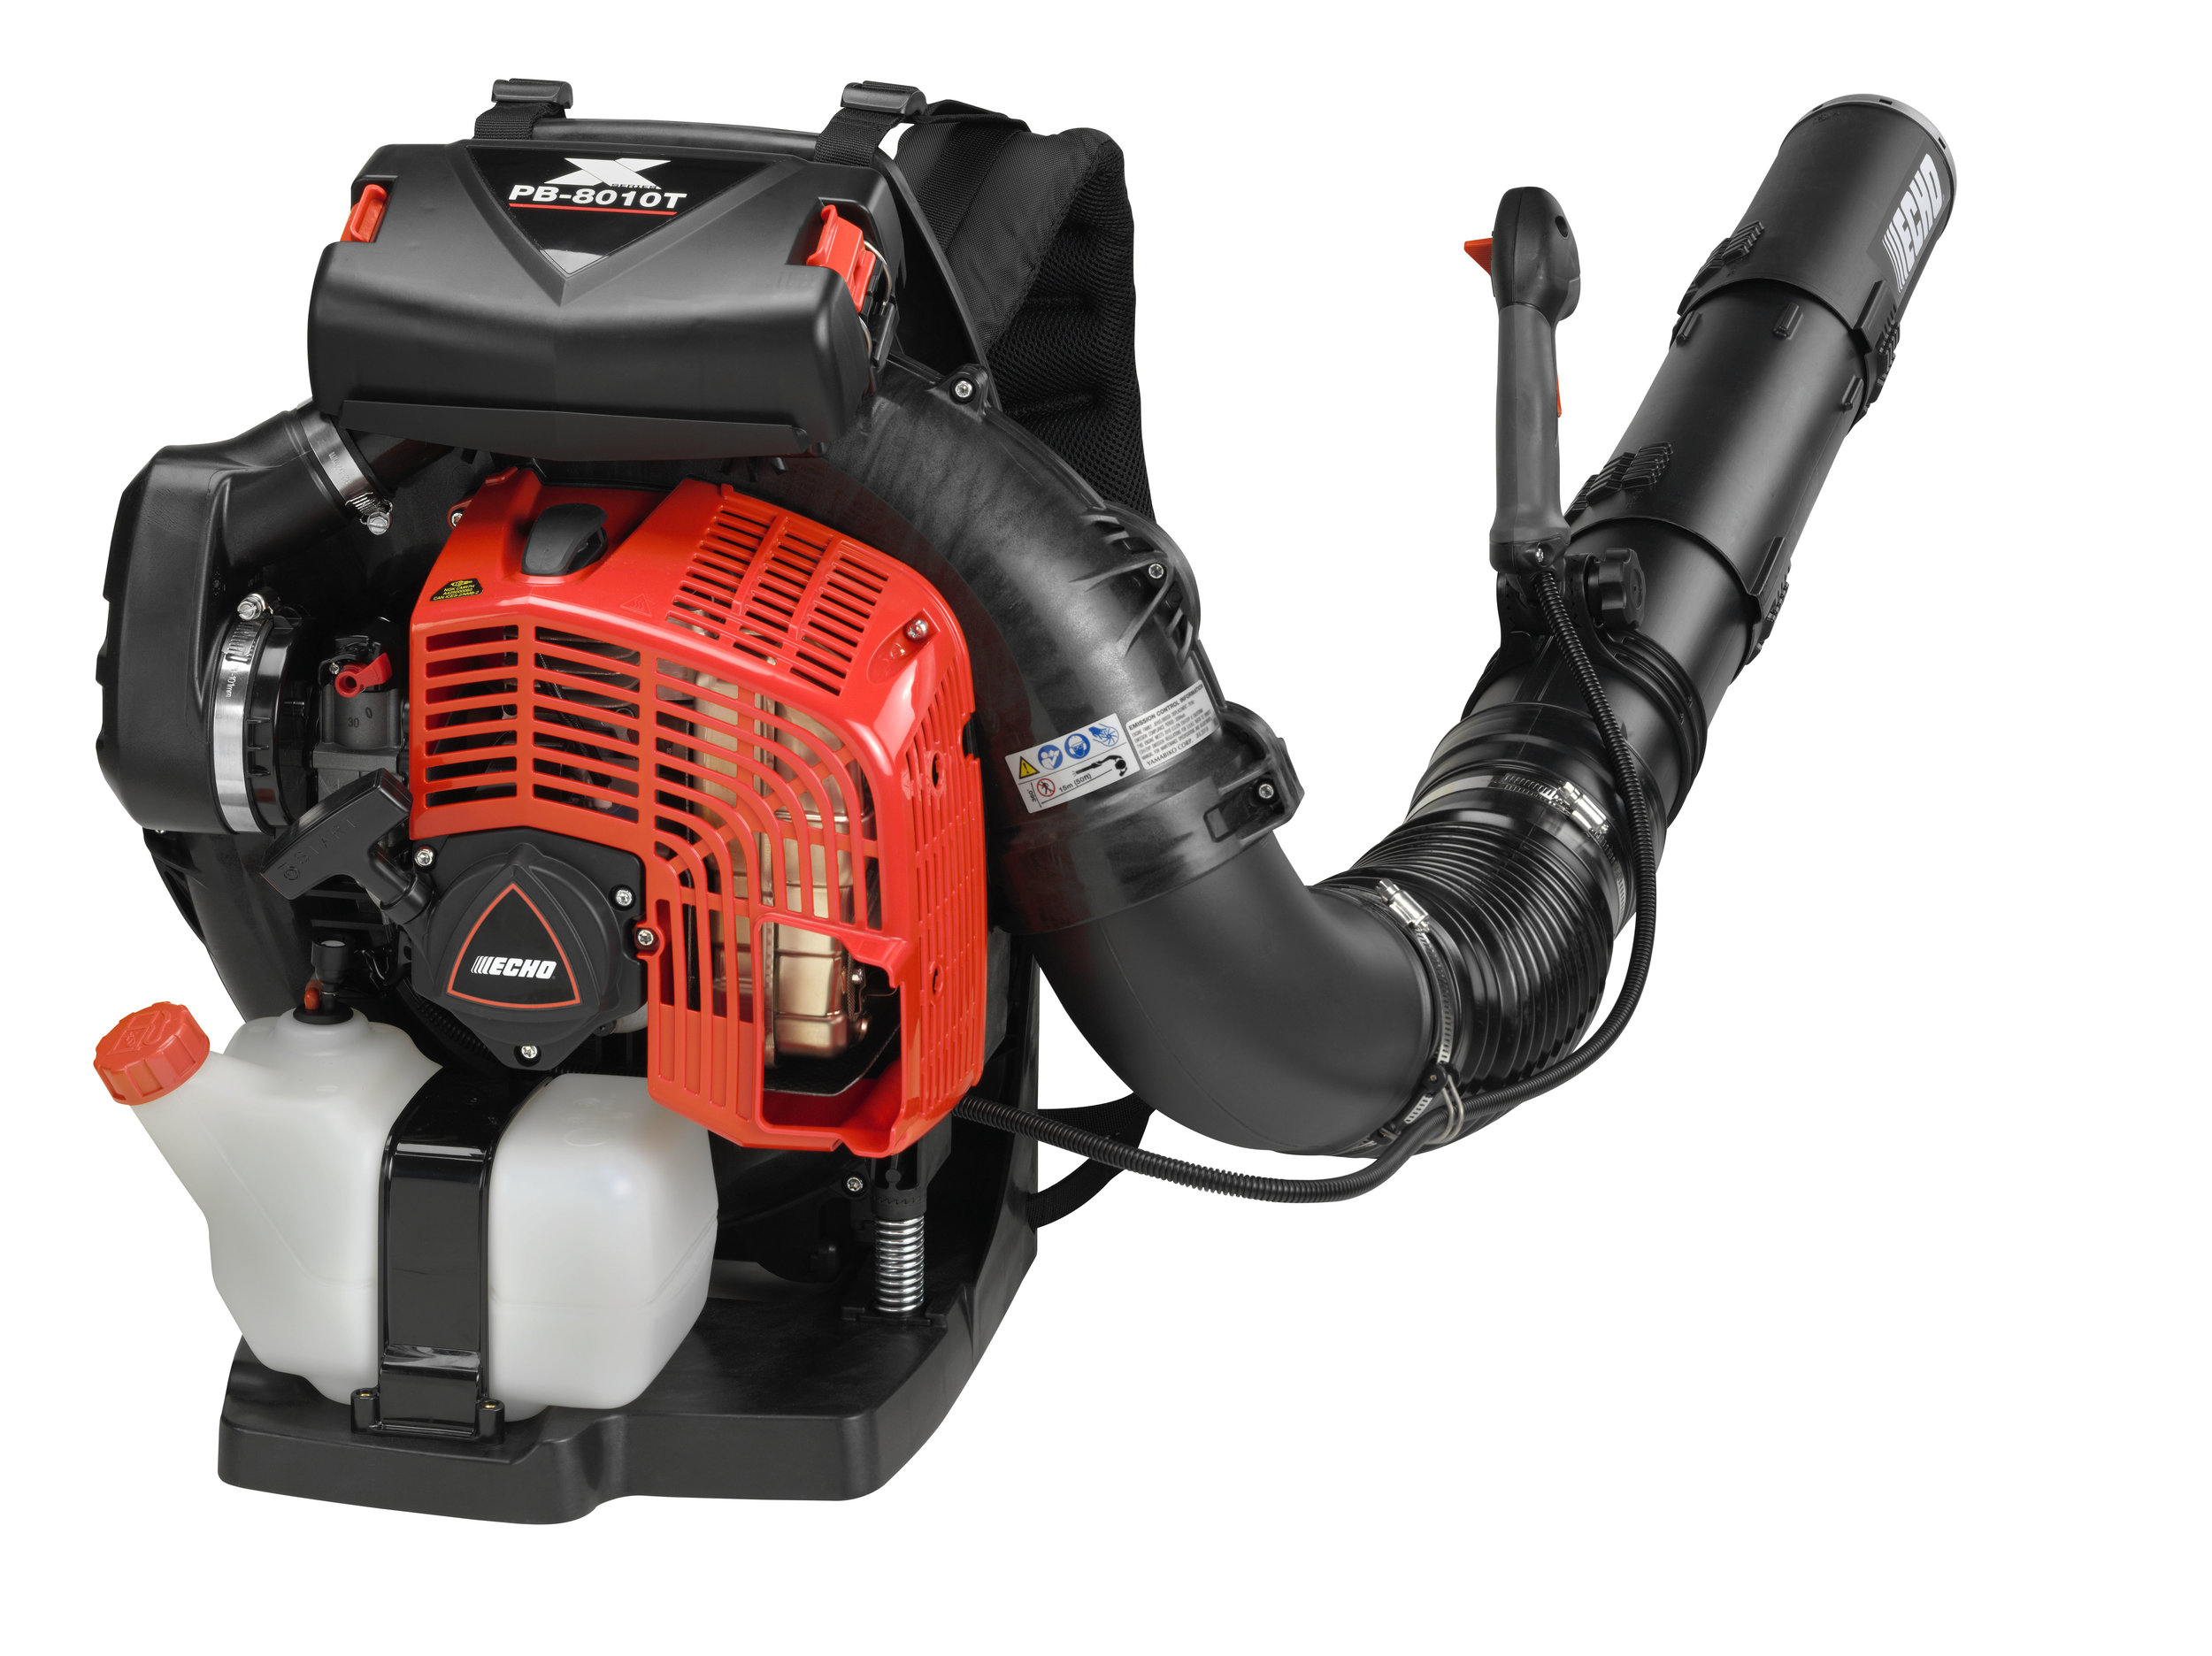 Echo PB-8010 - The industry's most powerful backpack blower!